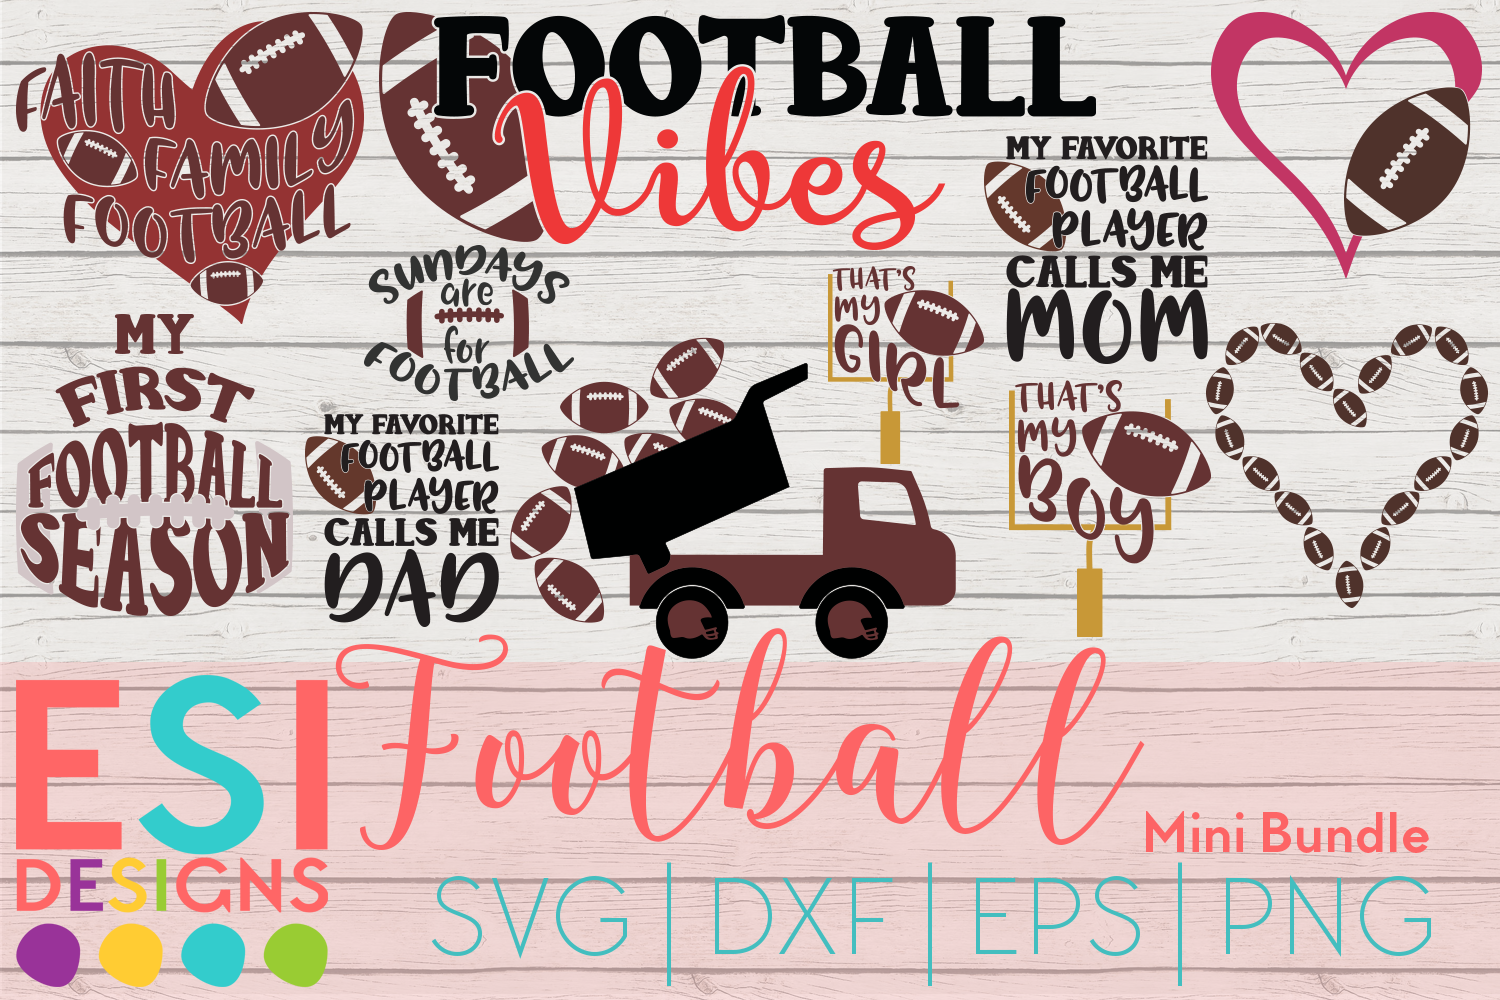 Download Free Football Mini Bundle Graphic By Esi Designs Creative Fabrica for Cricut Explore, Silhouette and other cutting machines.